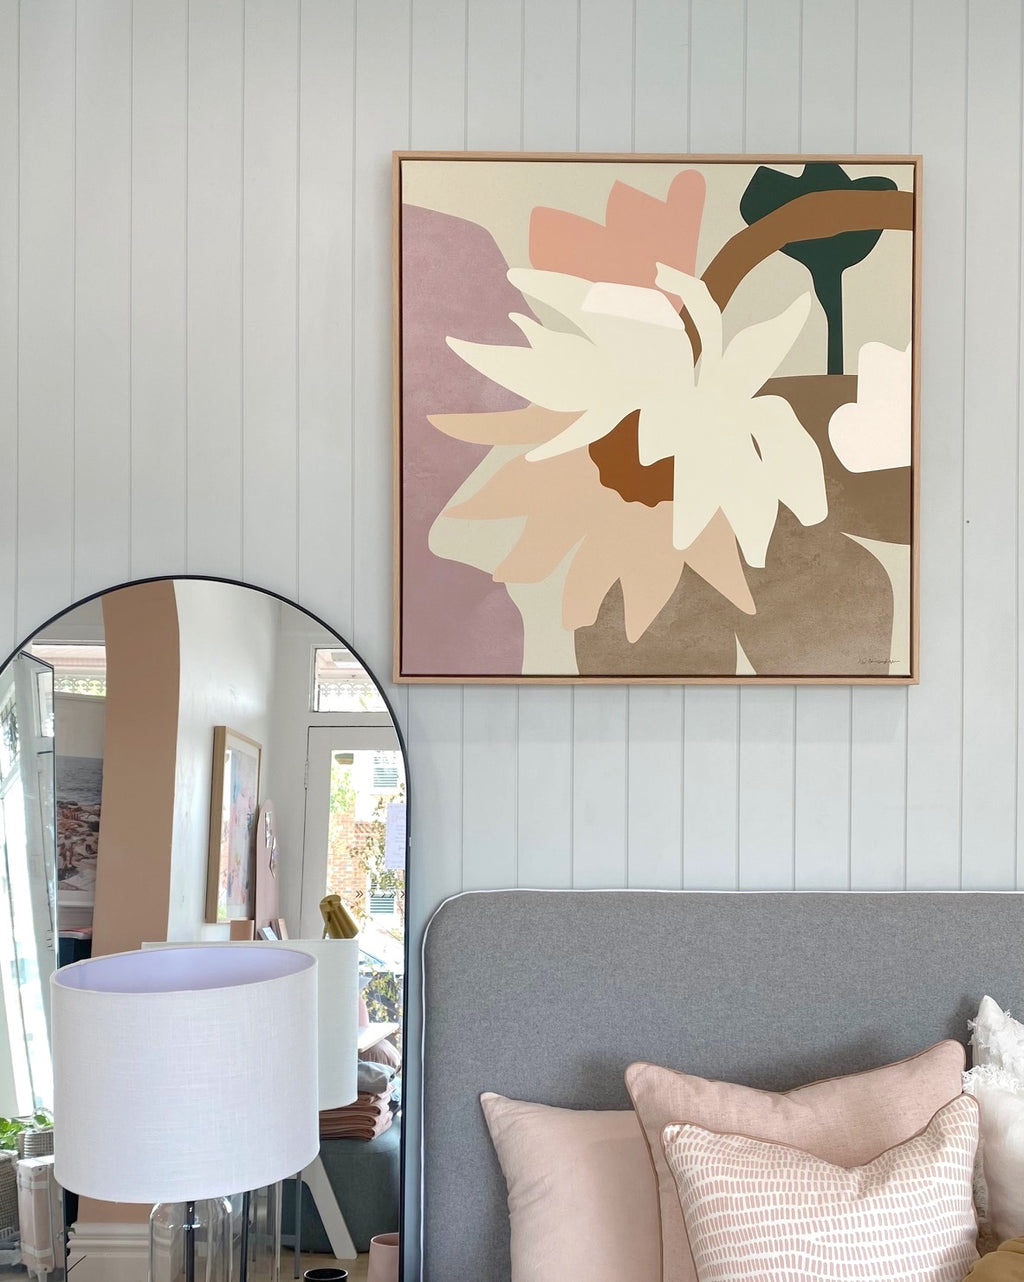 Oak Framed Kimmy Hogan 'Paper Daisies IV' canvas print - 93x93cm - Store pick up only (6155068309692)